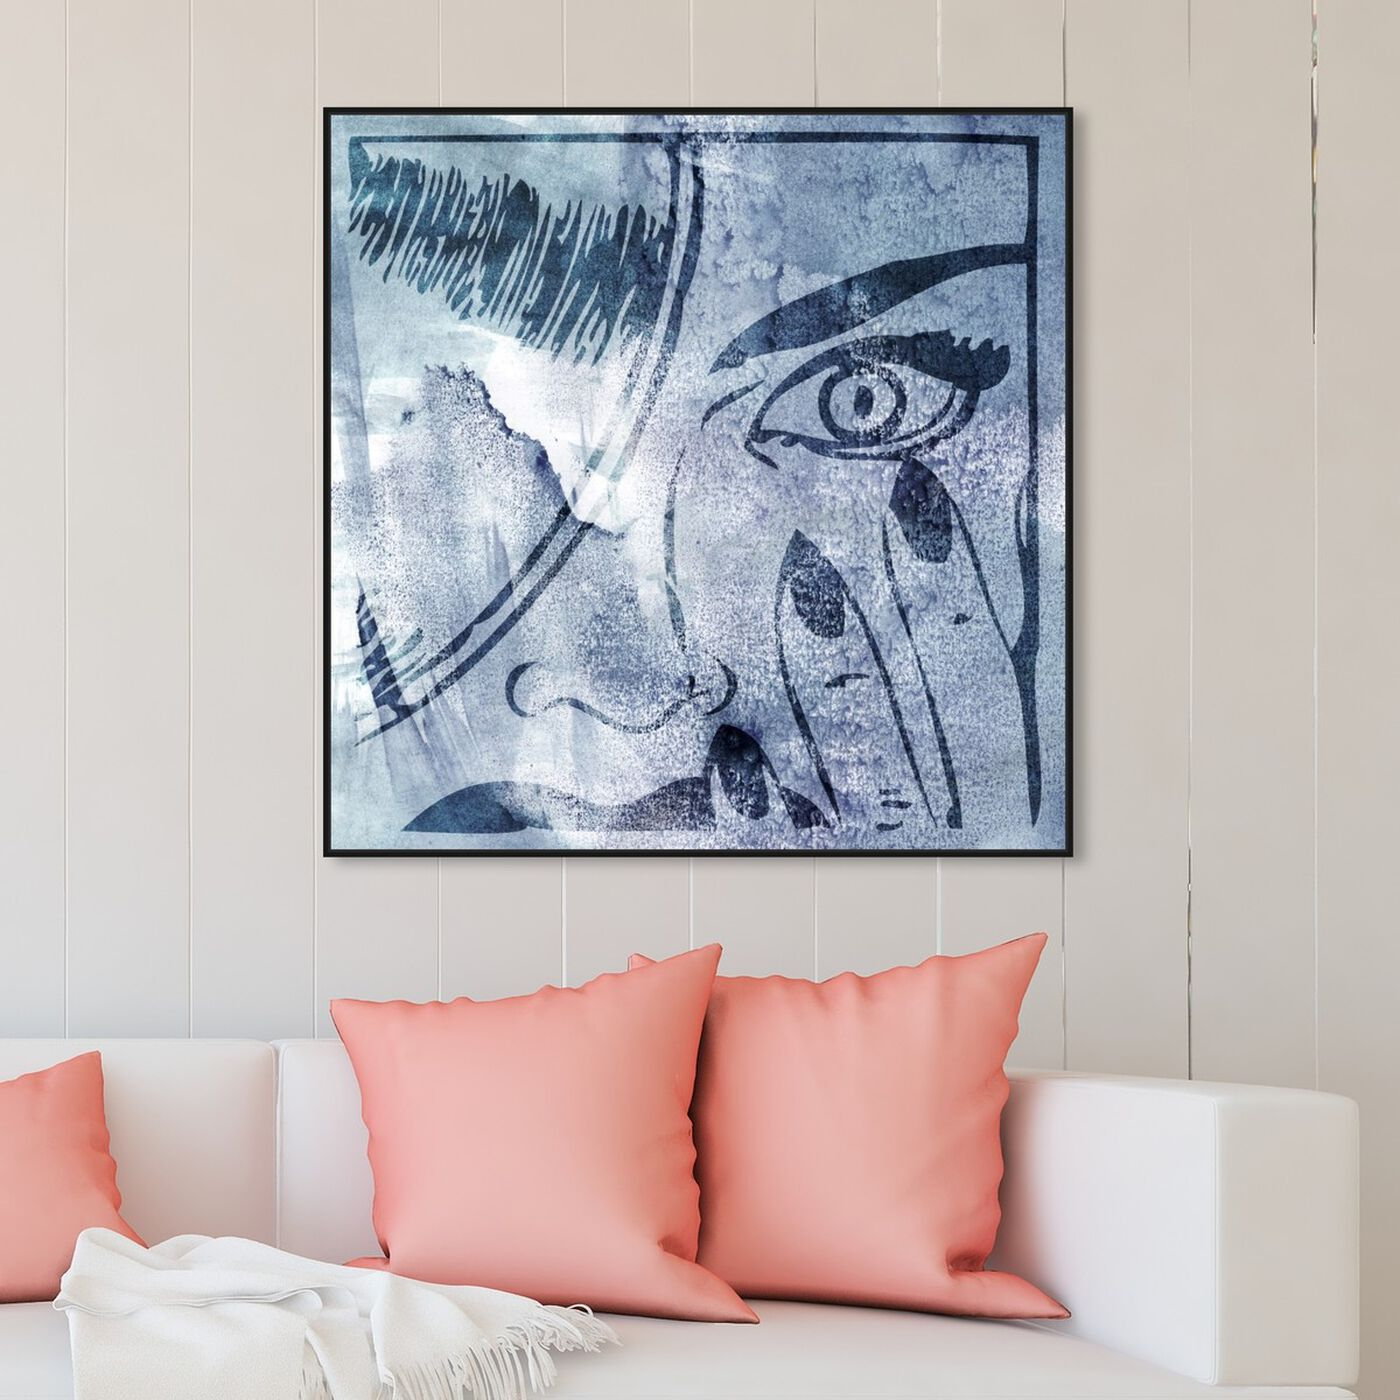 Hanging view of Revenge featuring fashion and glam and portraits art.